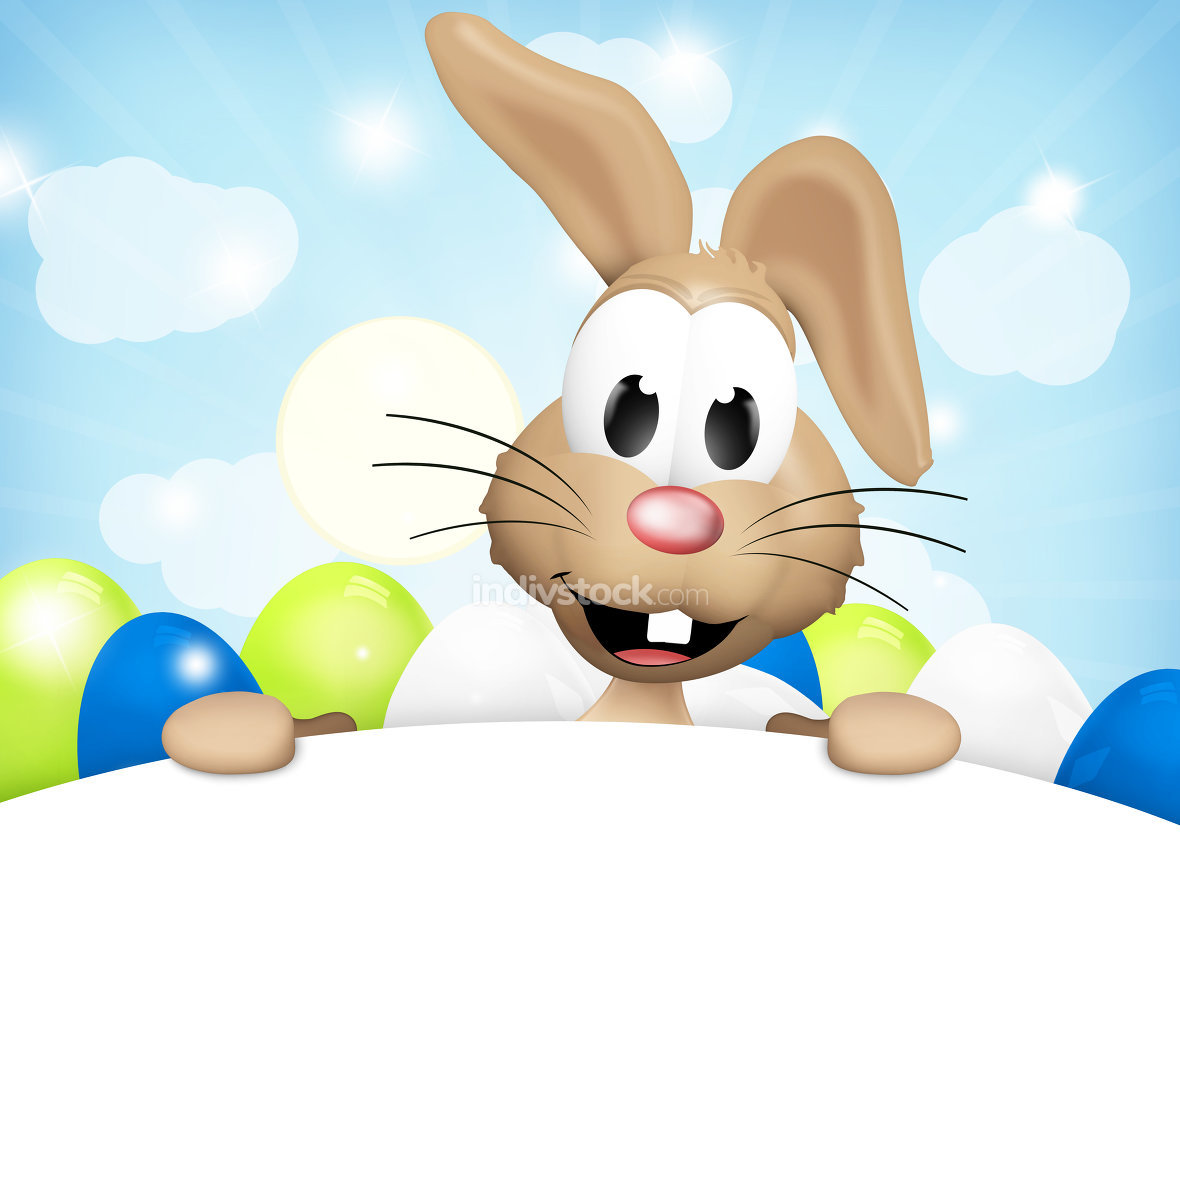 easter bunny light brown white boards paws